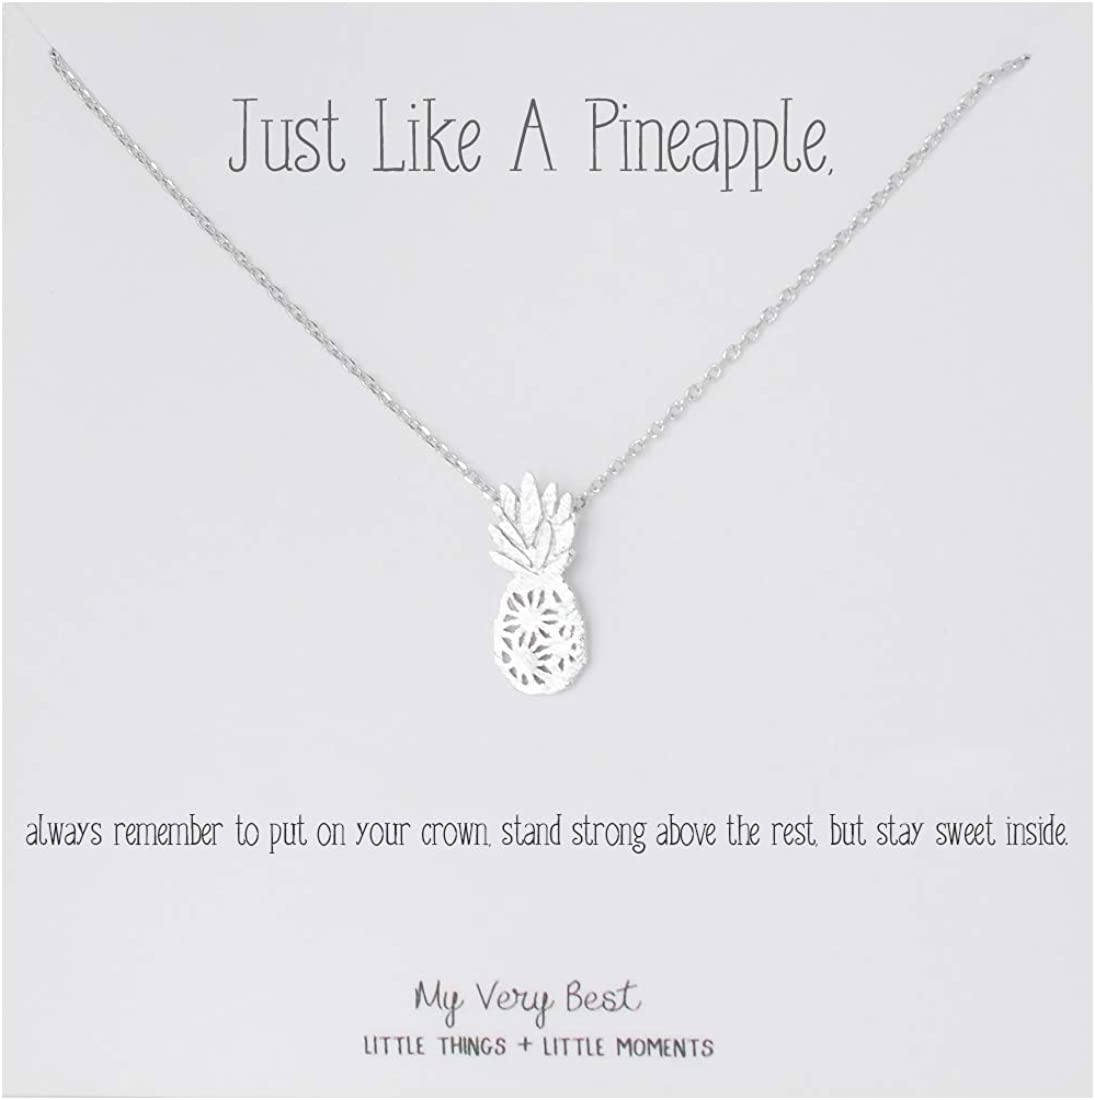 My Very Best Dainty Pineapple Necklace_Just Like a Pineapple, Always Remember to Put on Your Crown, Stand Strong Above The Rest, but Stay Sweet Inside